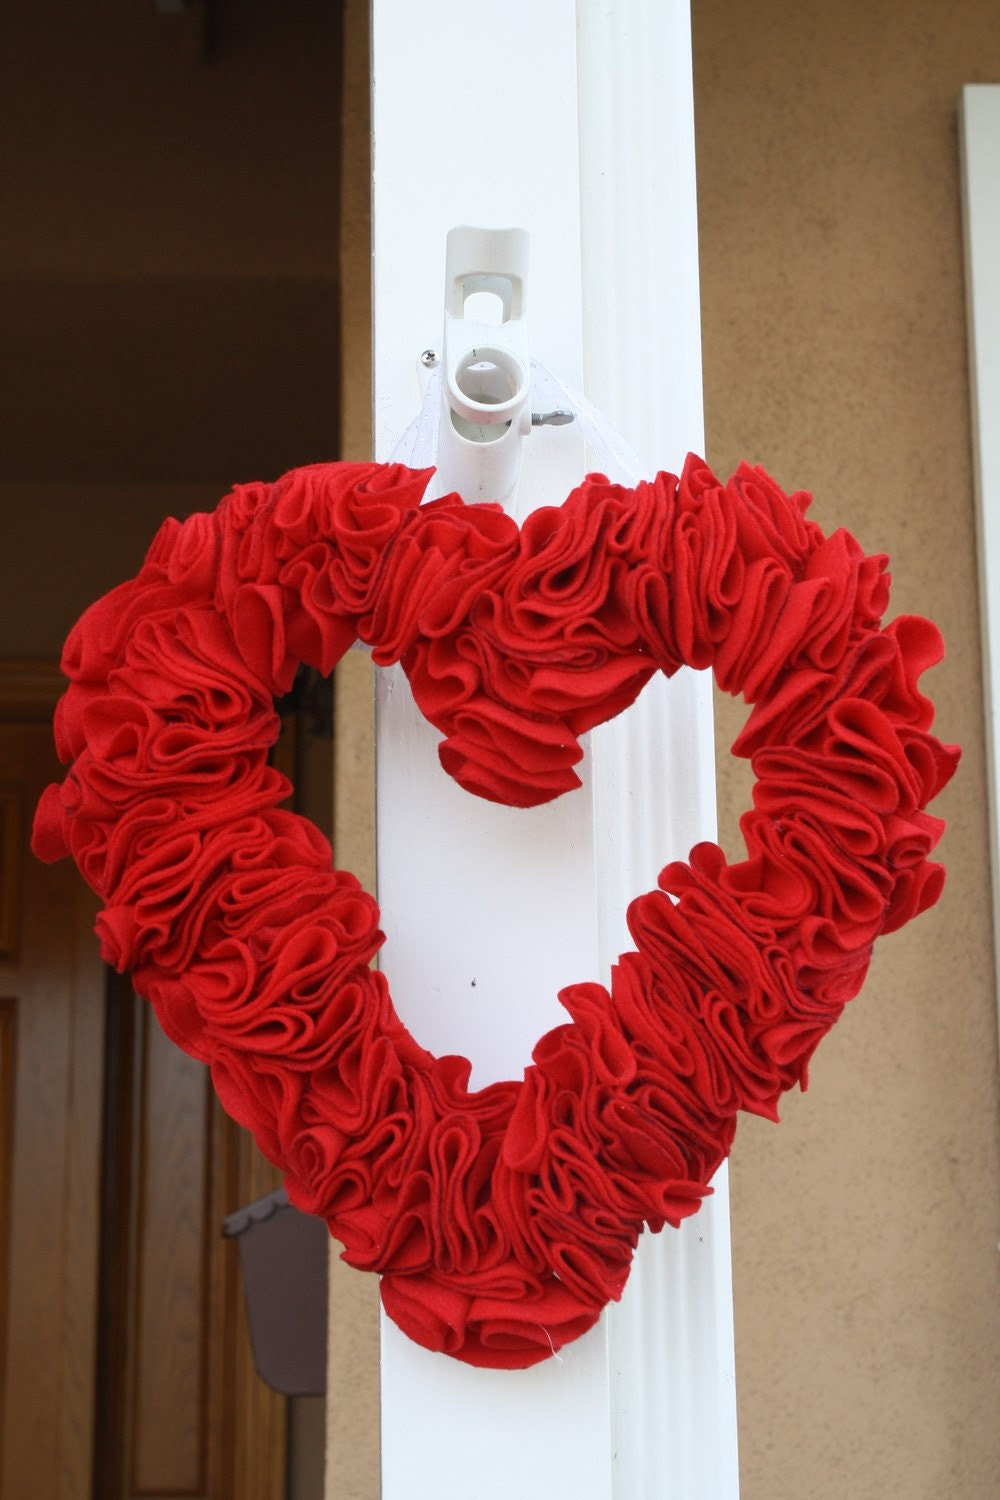 Wreath Home Decor Valentine's Red Heart Felt Door by LilNoodleBug